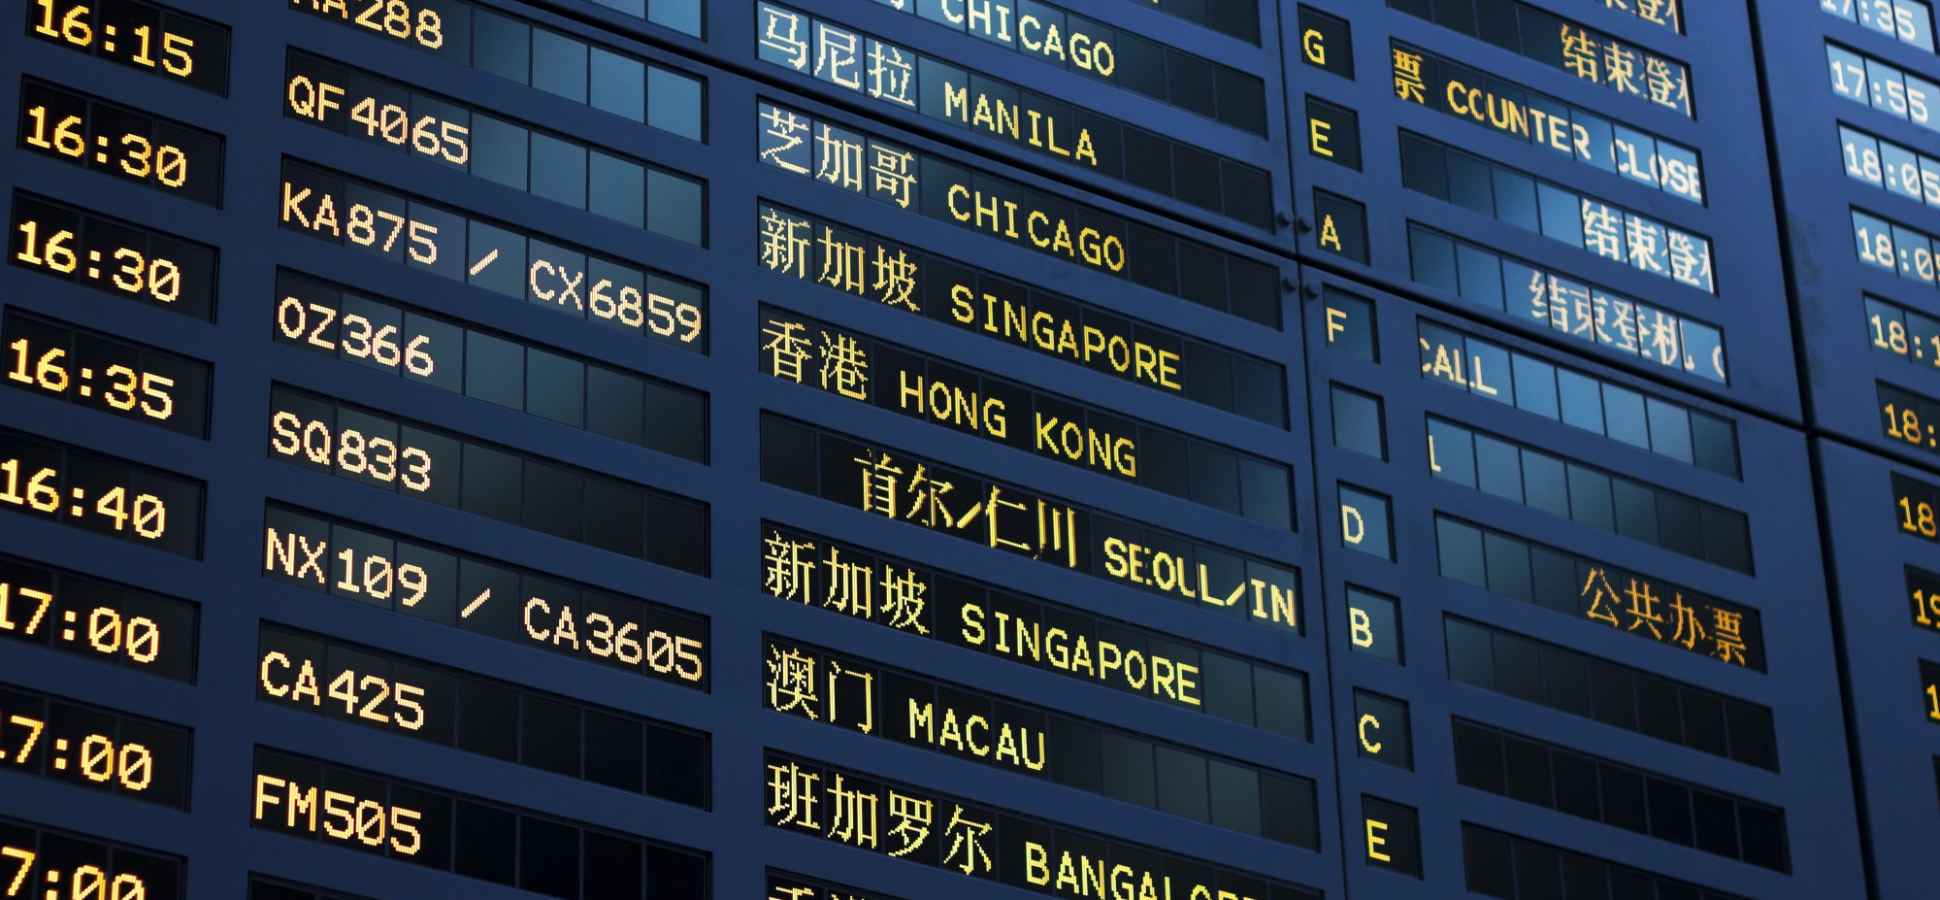 The Hidden Toll of Frequent Business Travel